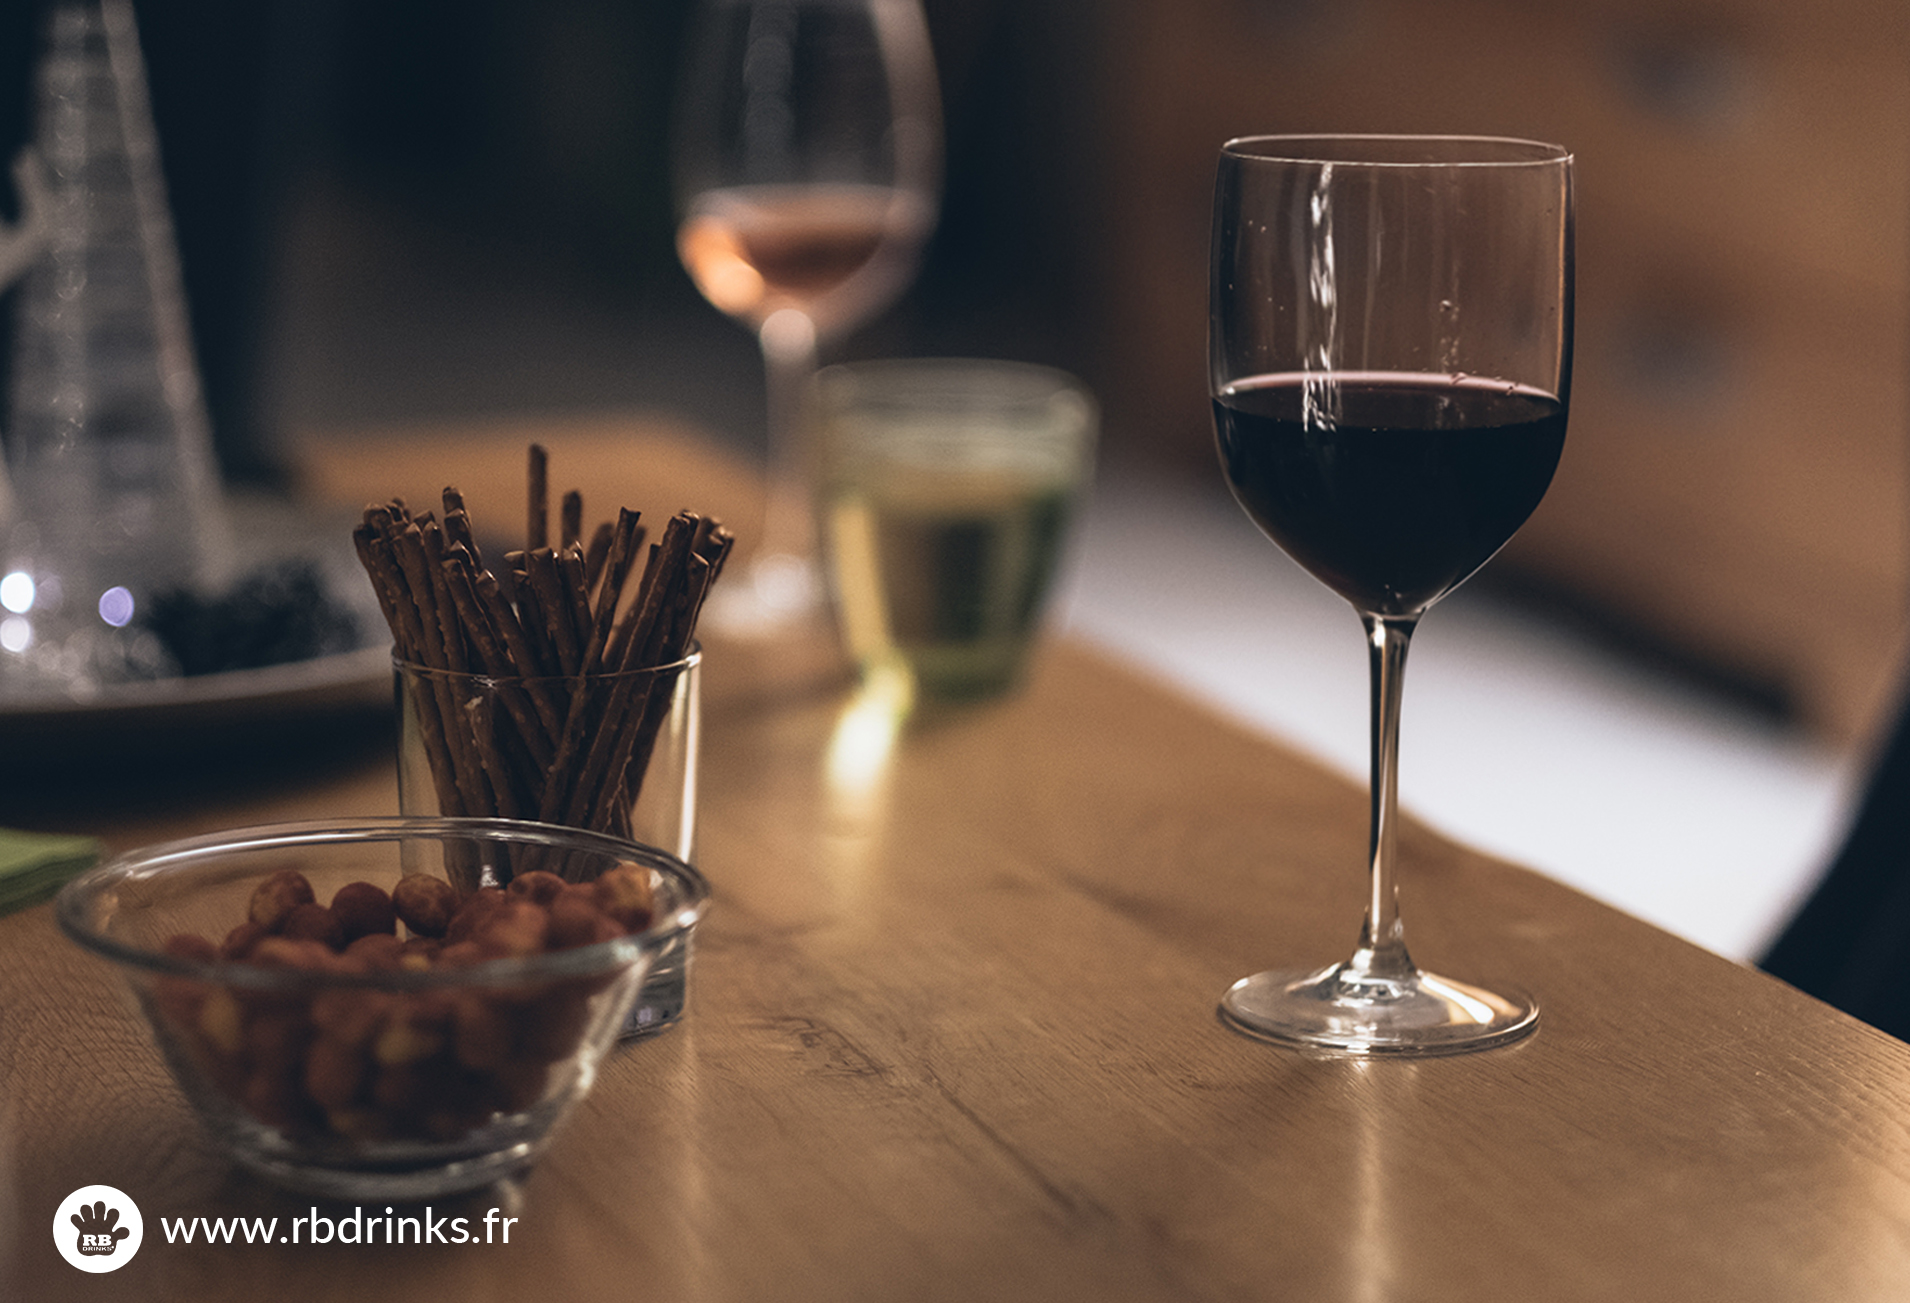 Verre à vin professionnel - incassable | RBDRINKS®